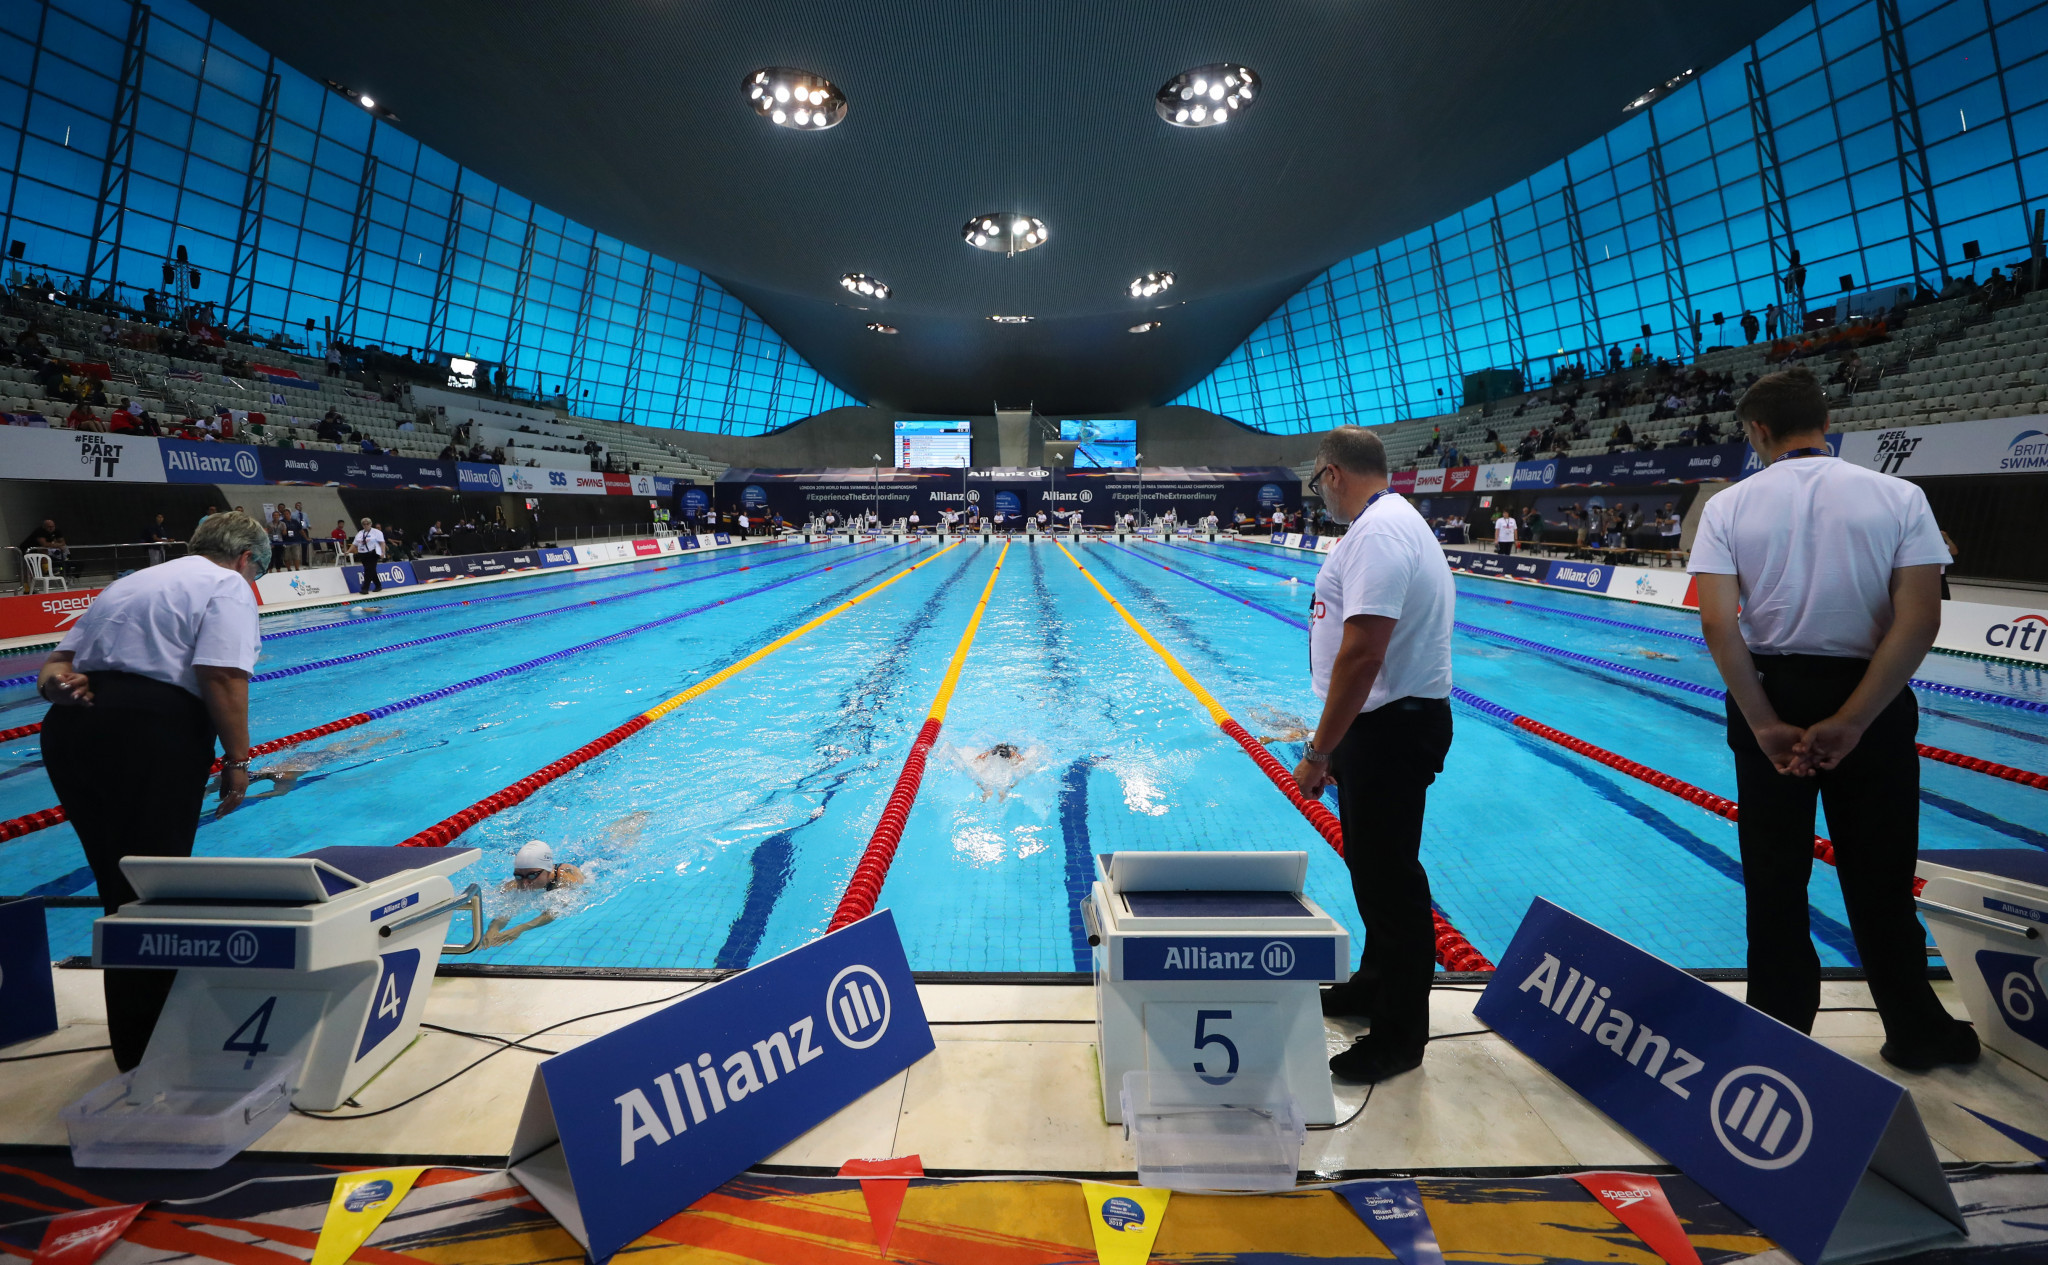 The 2019 World Para Swimming Championships have begun in London ©Getty Images